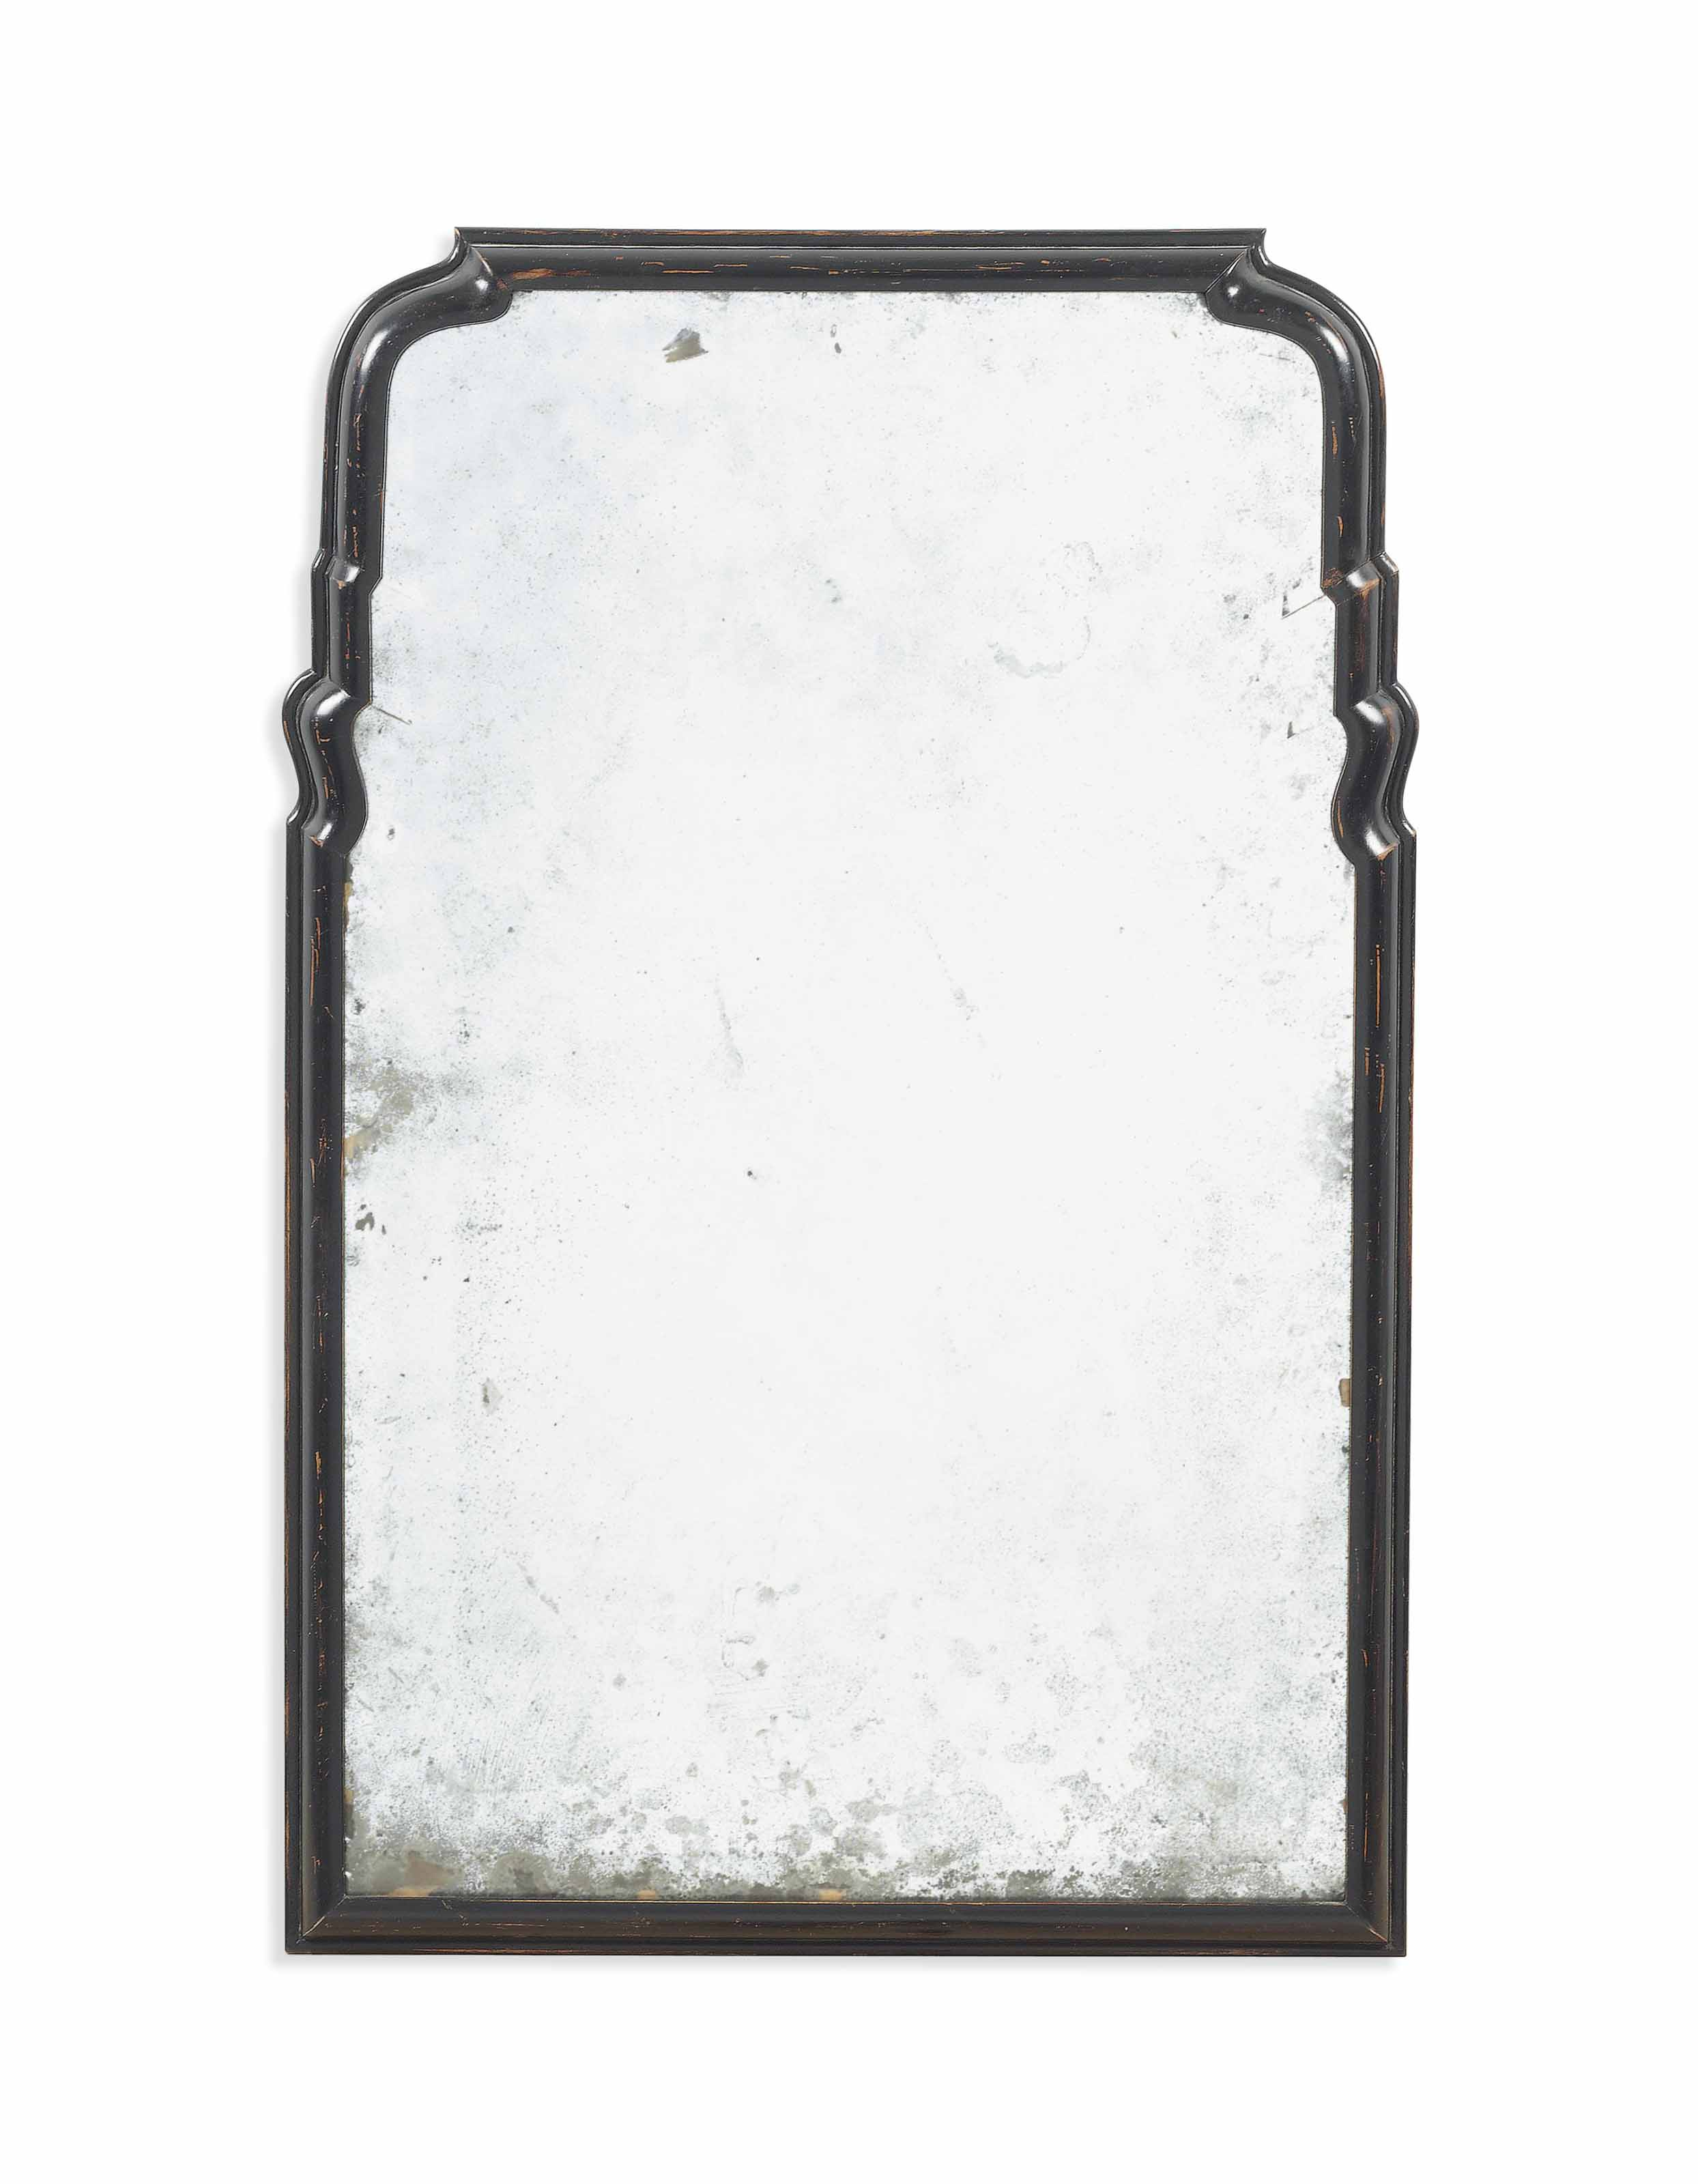 queen anne mirror flanking lot 17 queen anne mirror early 18th century in later ebonised frame